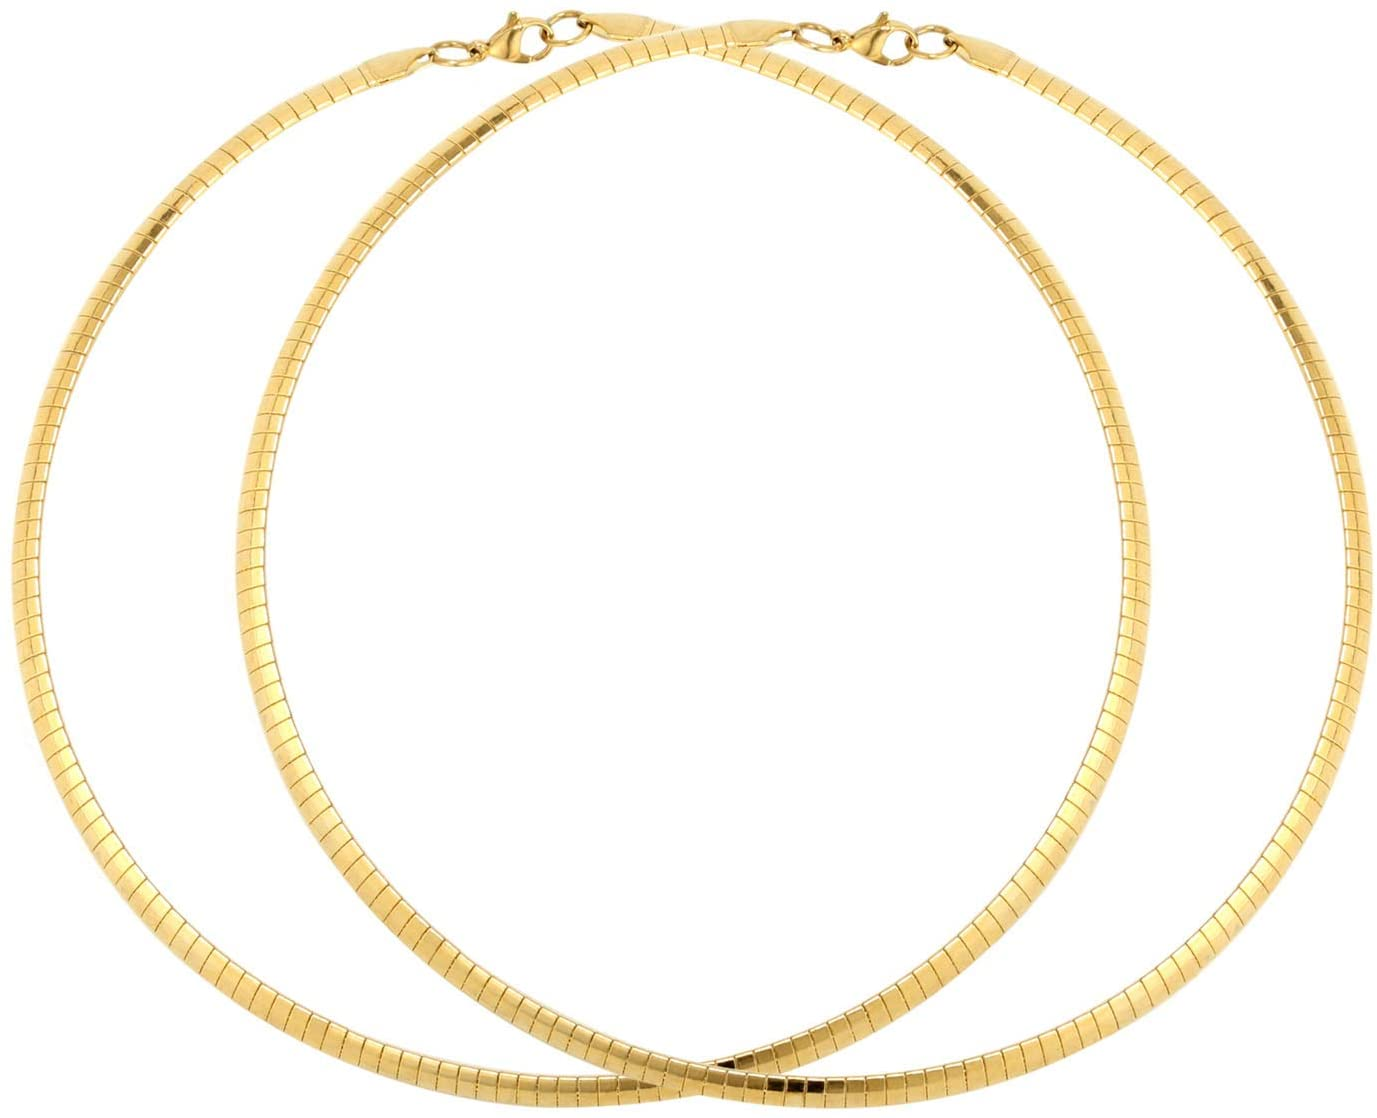 2PCS 18K Gold Plated Stainless Steel Omega Necklace Flat Snake Chain